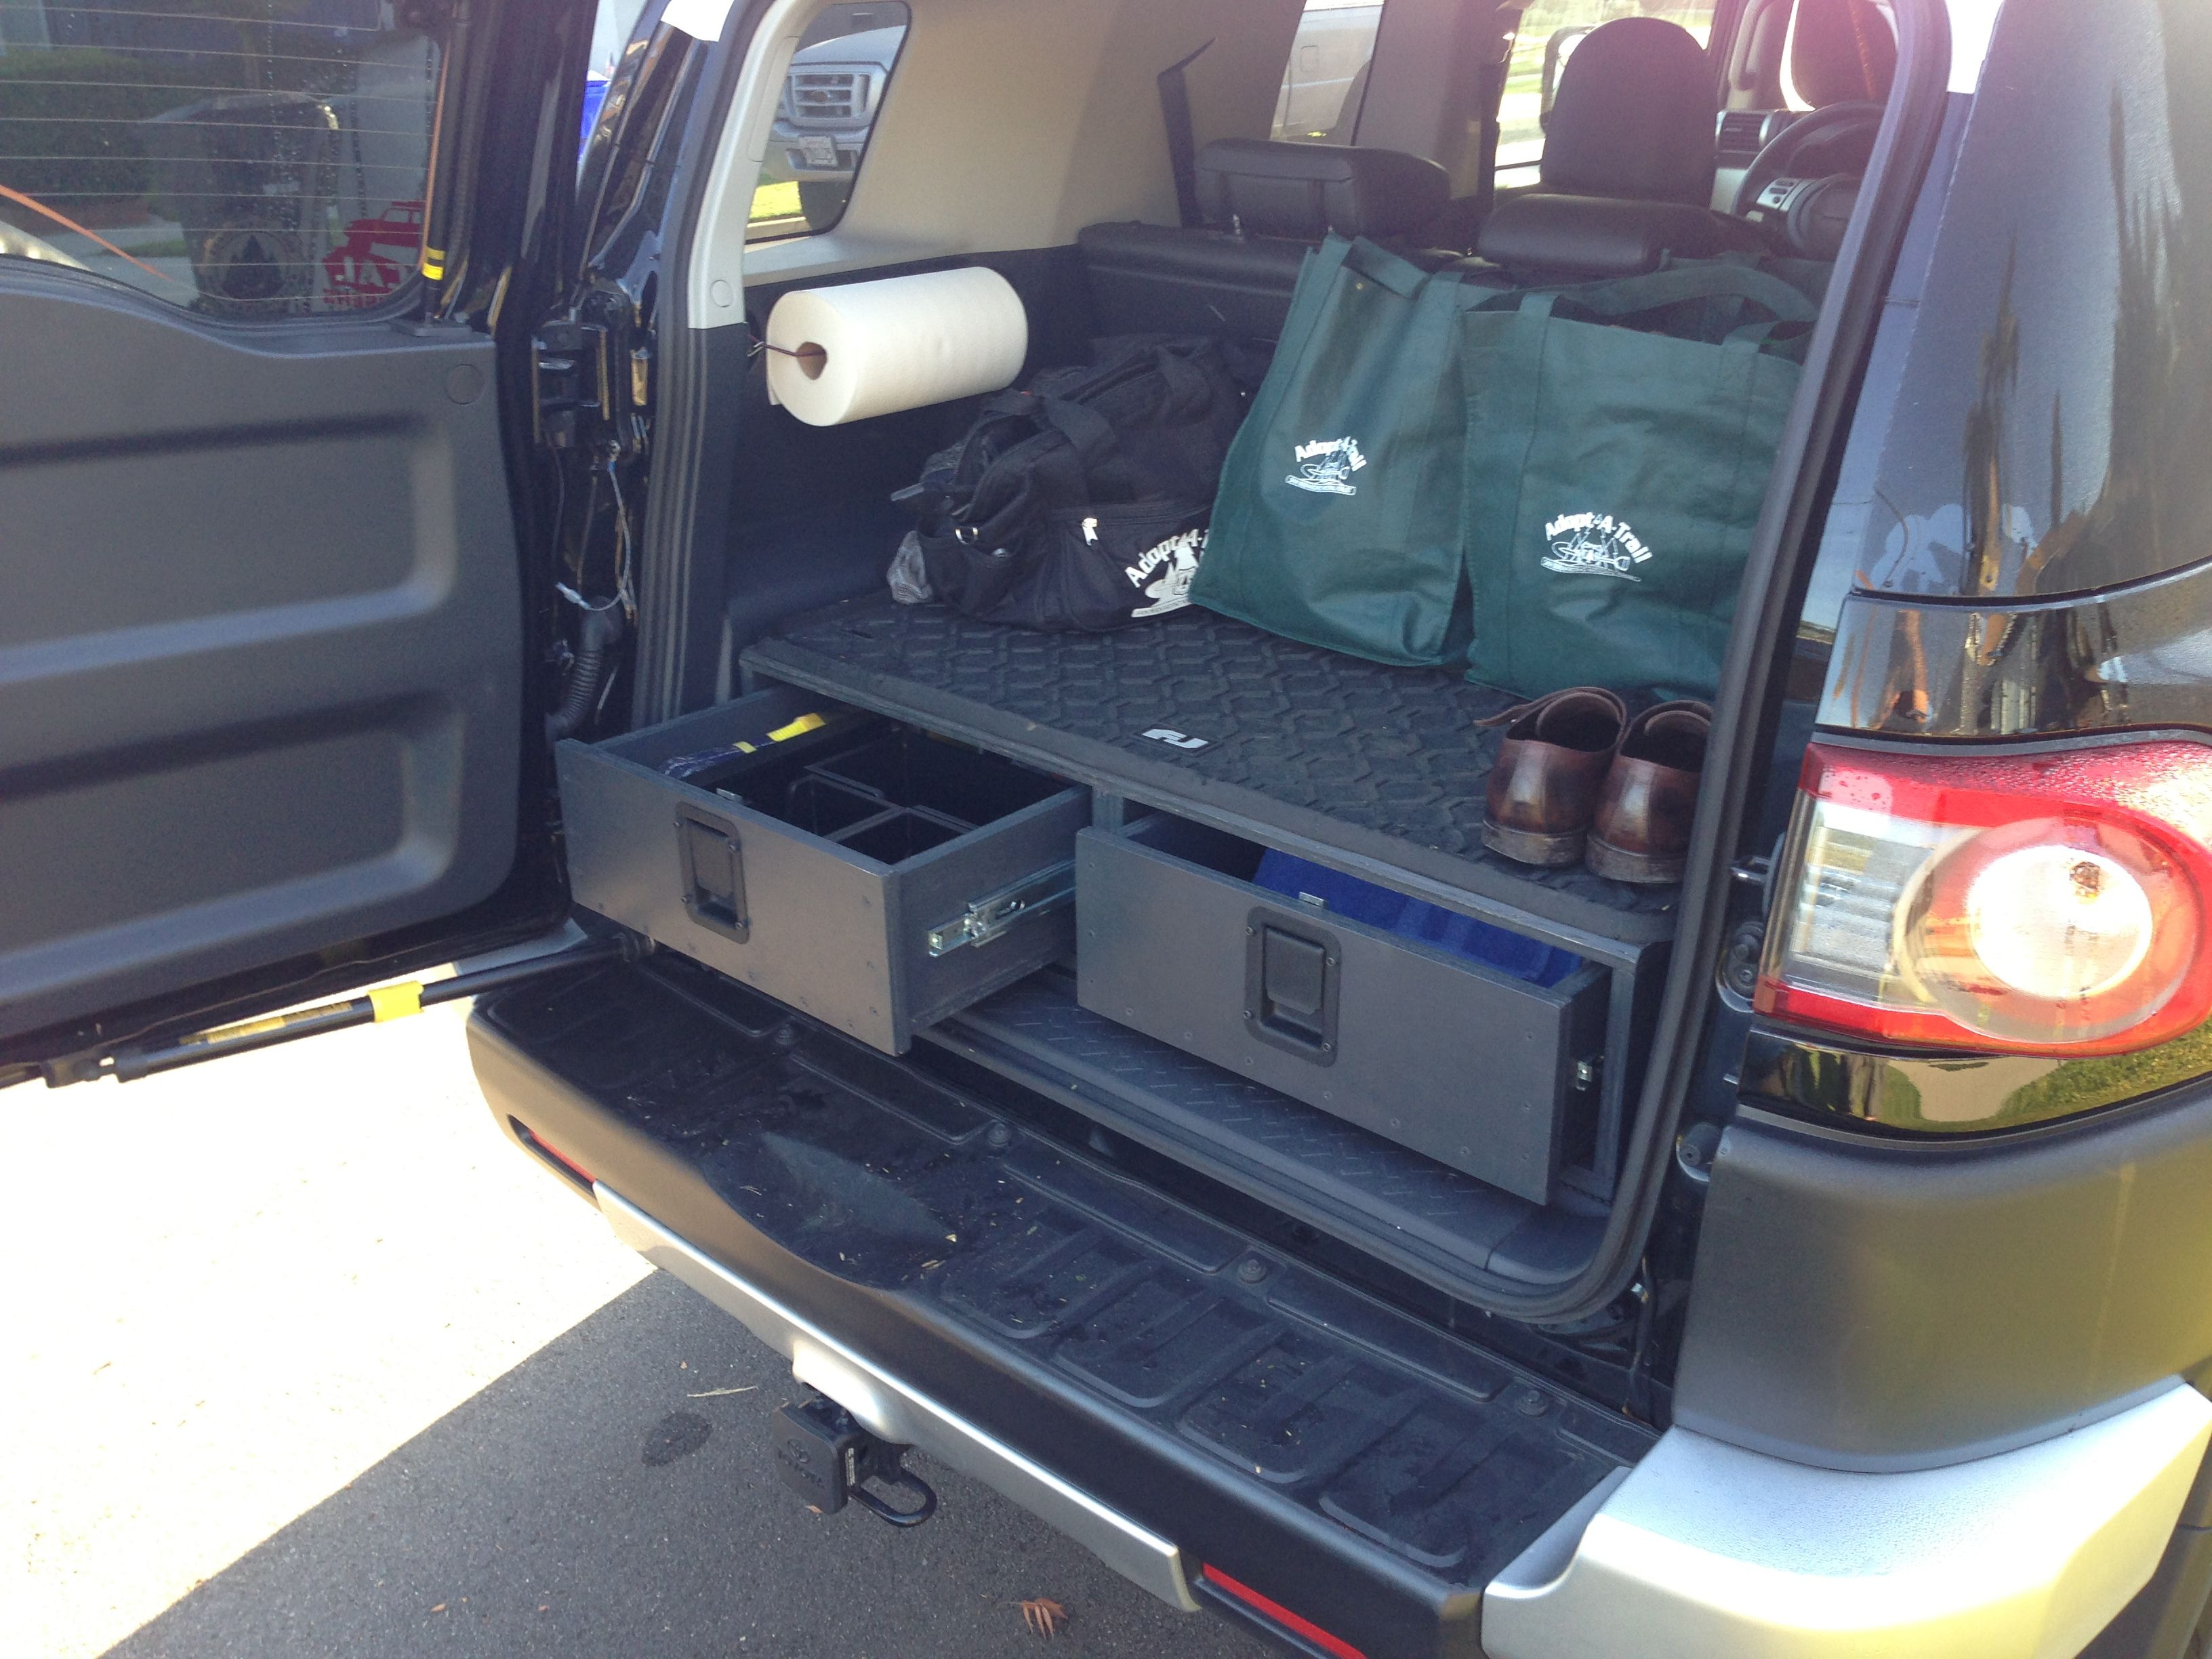 Fj cruiser storage drawers fj wants pinterest toyota and toyota fj cruiser for Toyota fj cruiser interior accessories